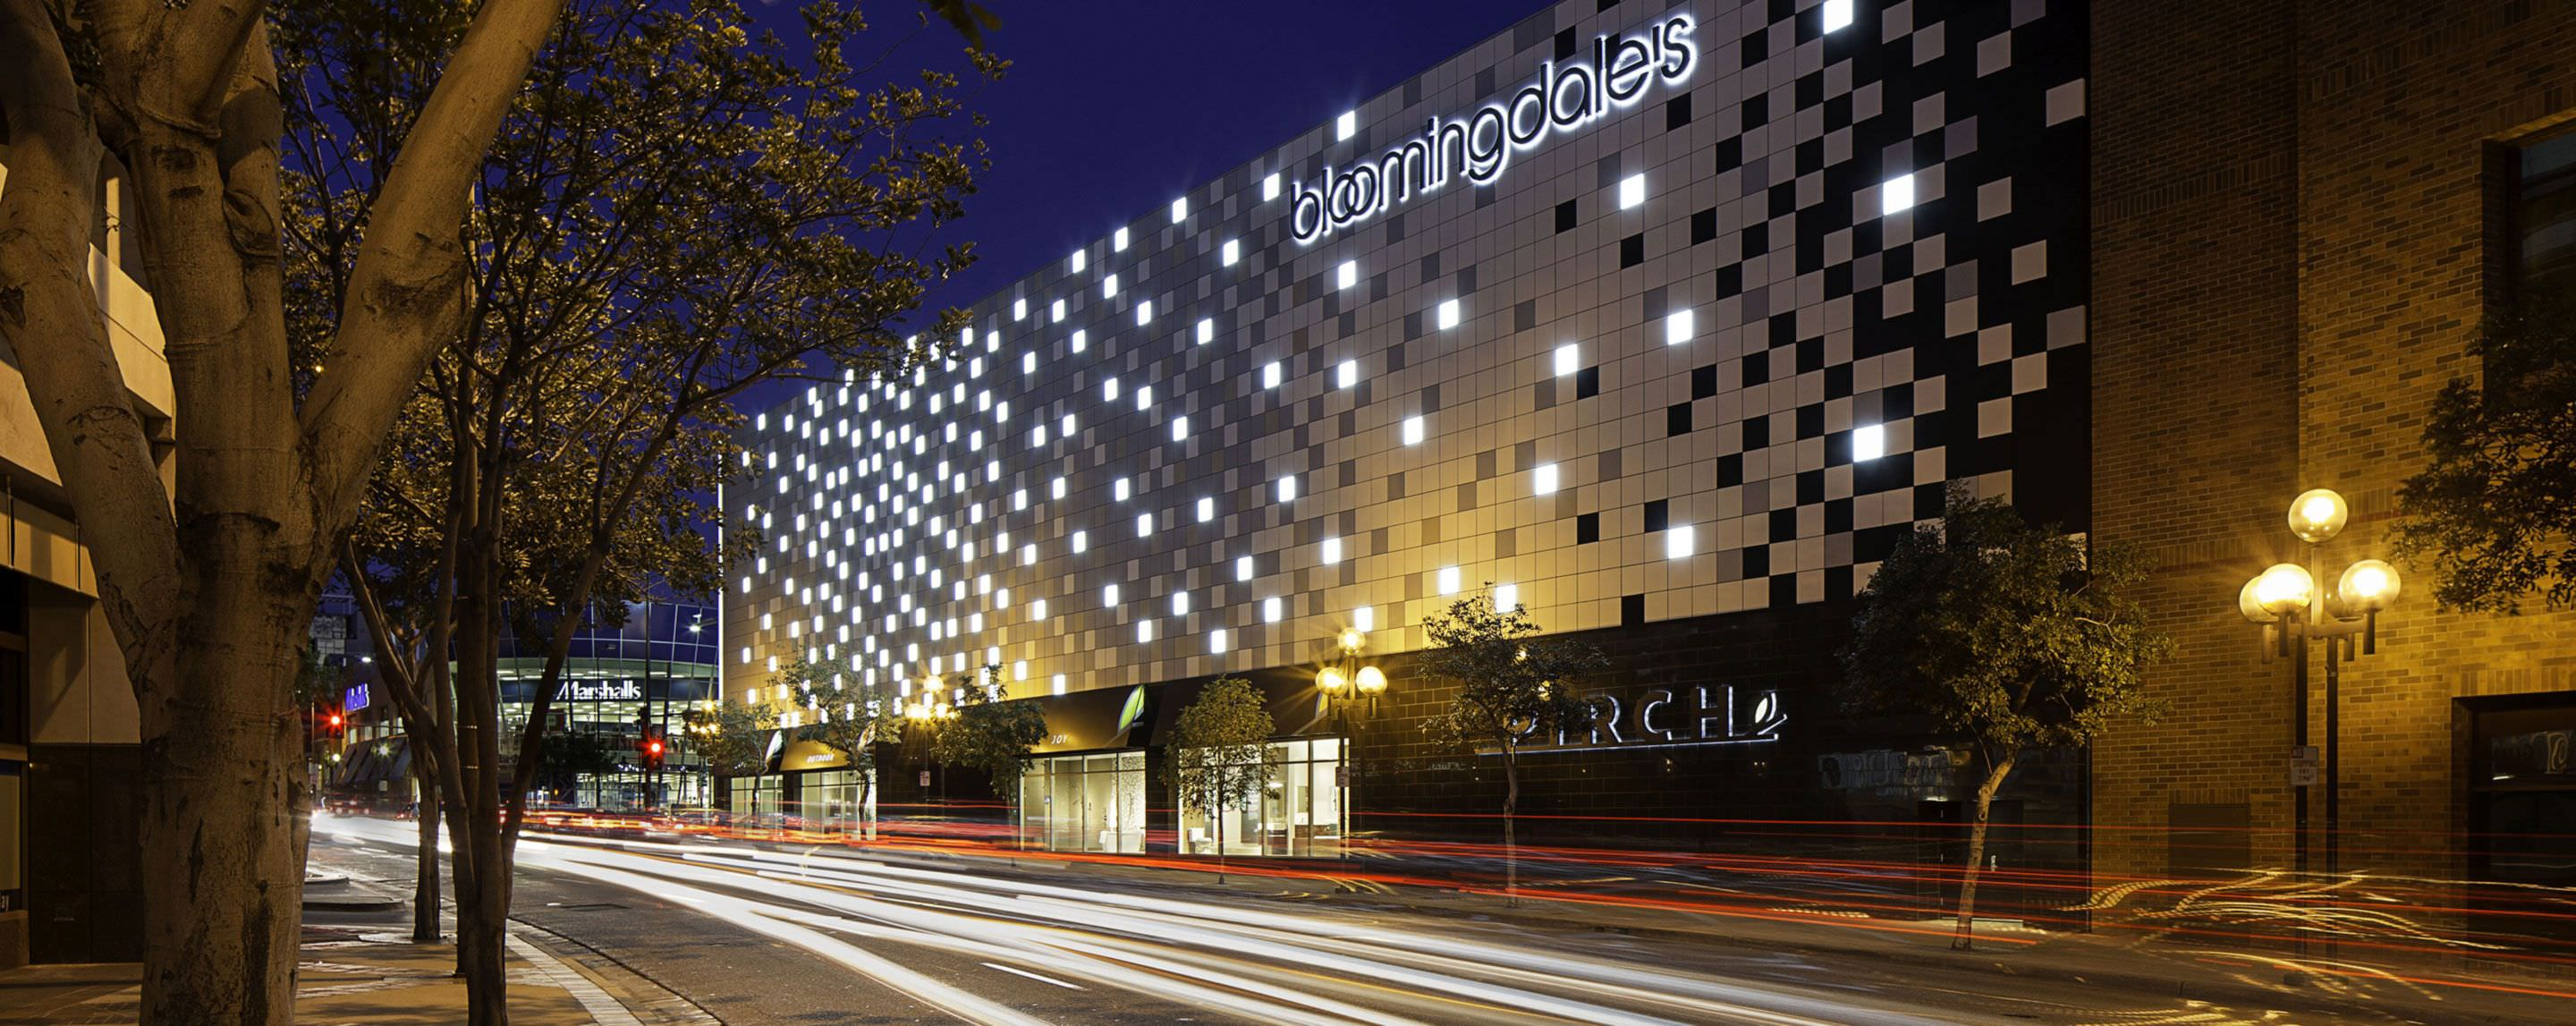 At night, a GGP property Bloomingdales is lit up welcoming shoppers as cars pass by.